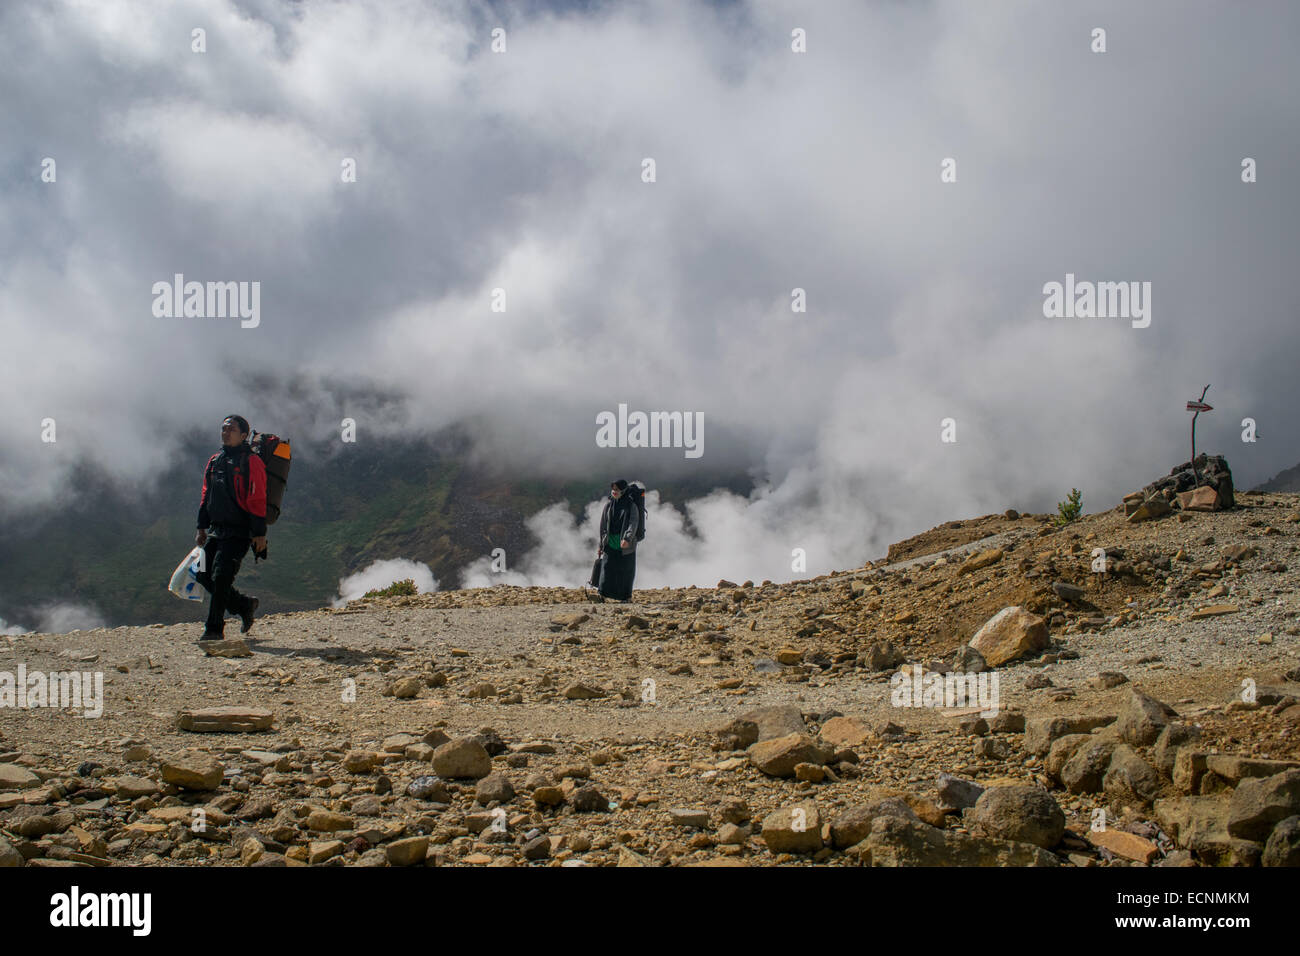 Local climbers walk along caldera ridge of Mount Papandayan. - Stock Image